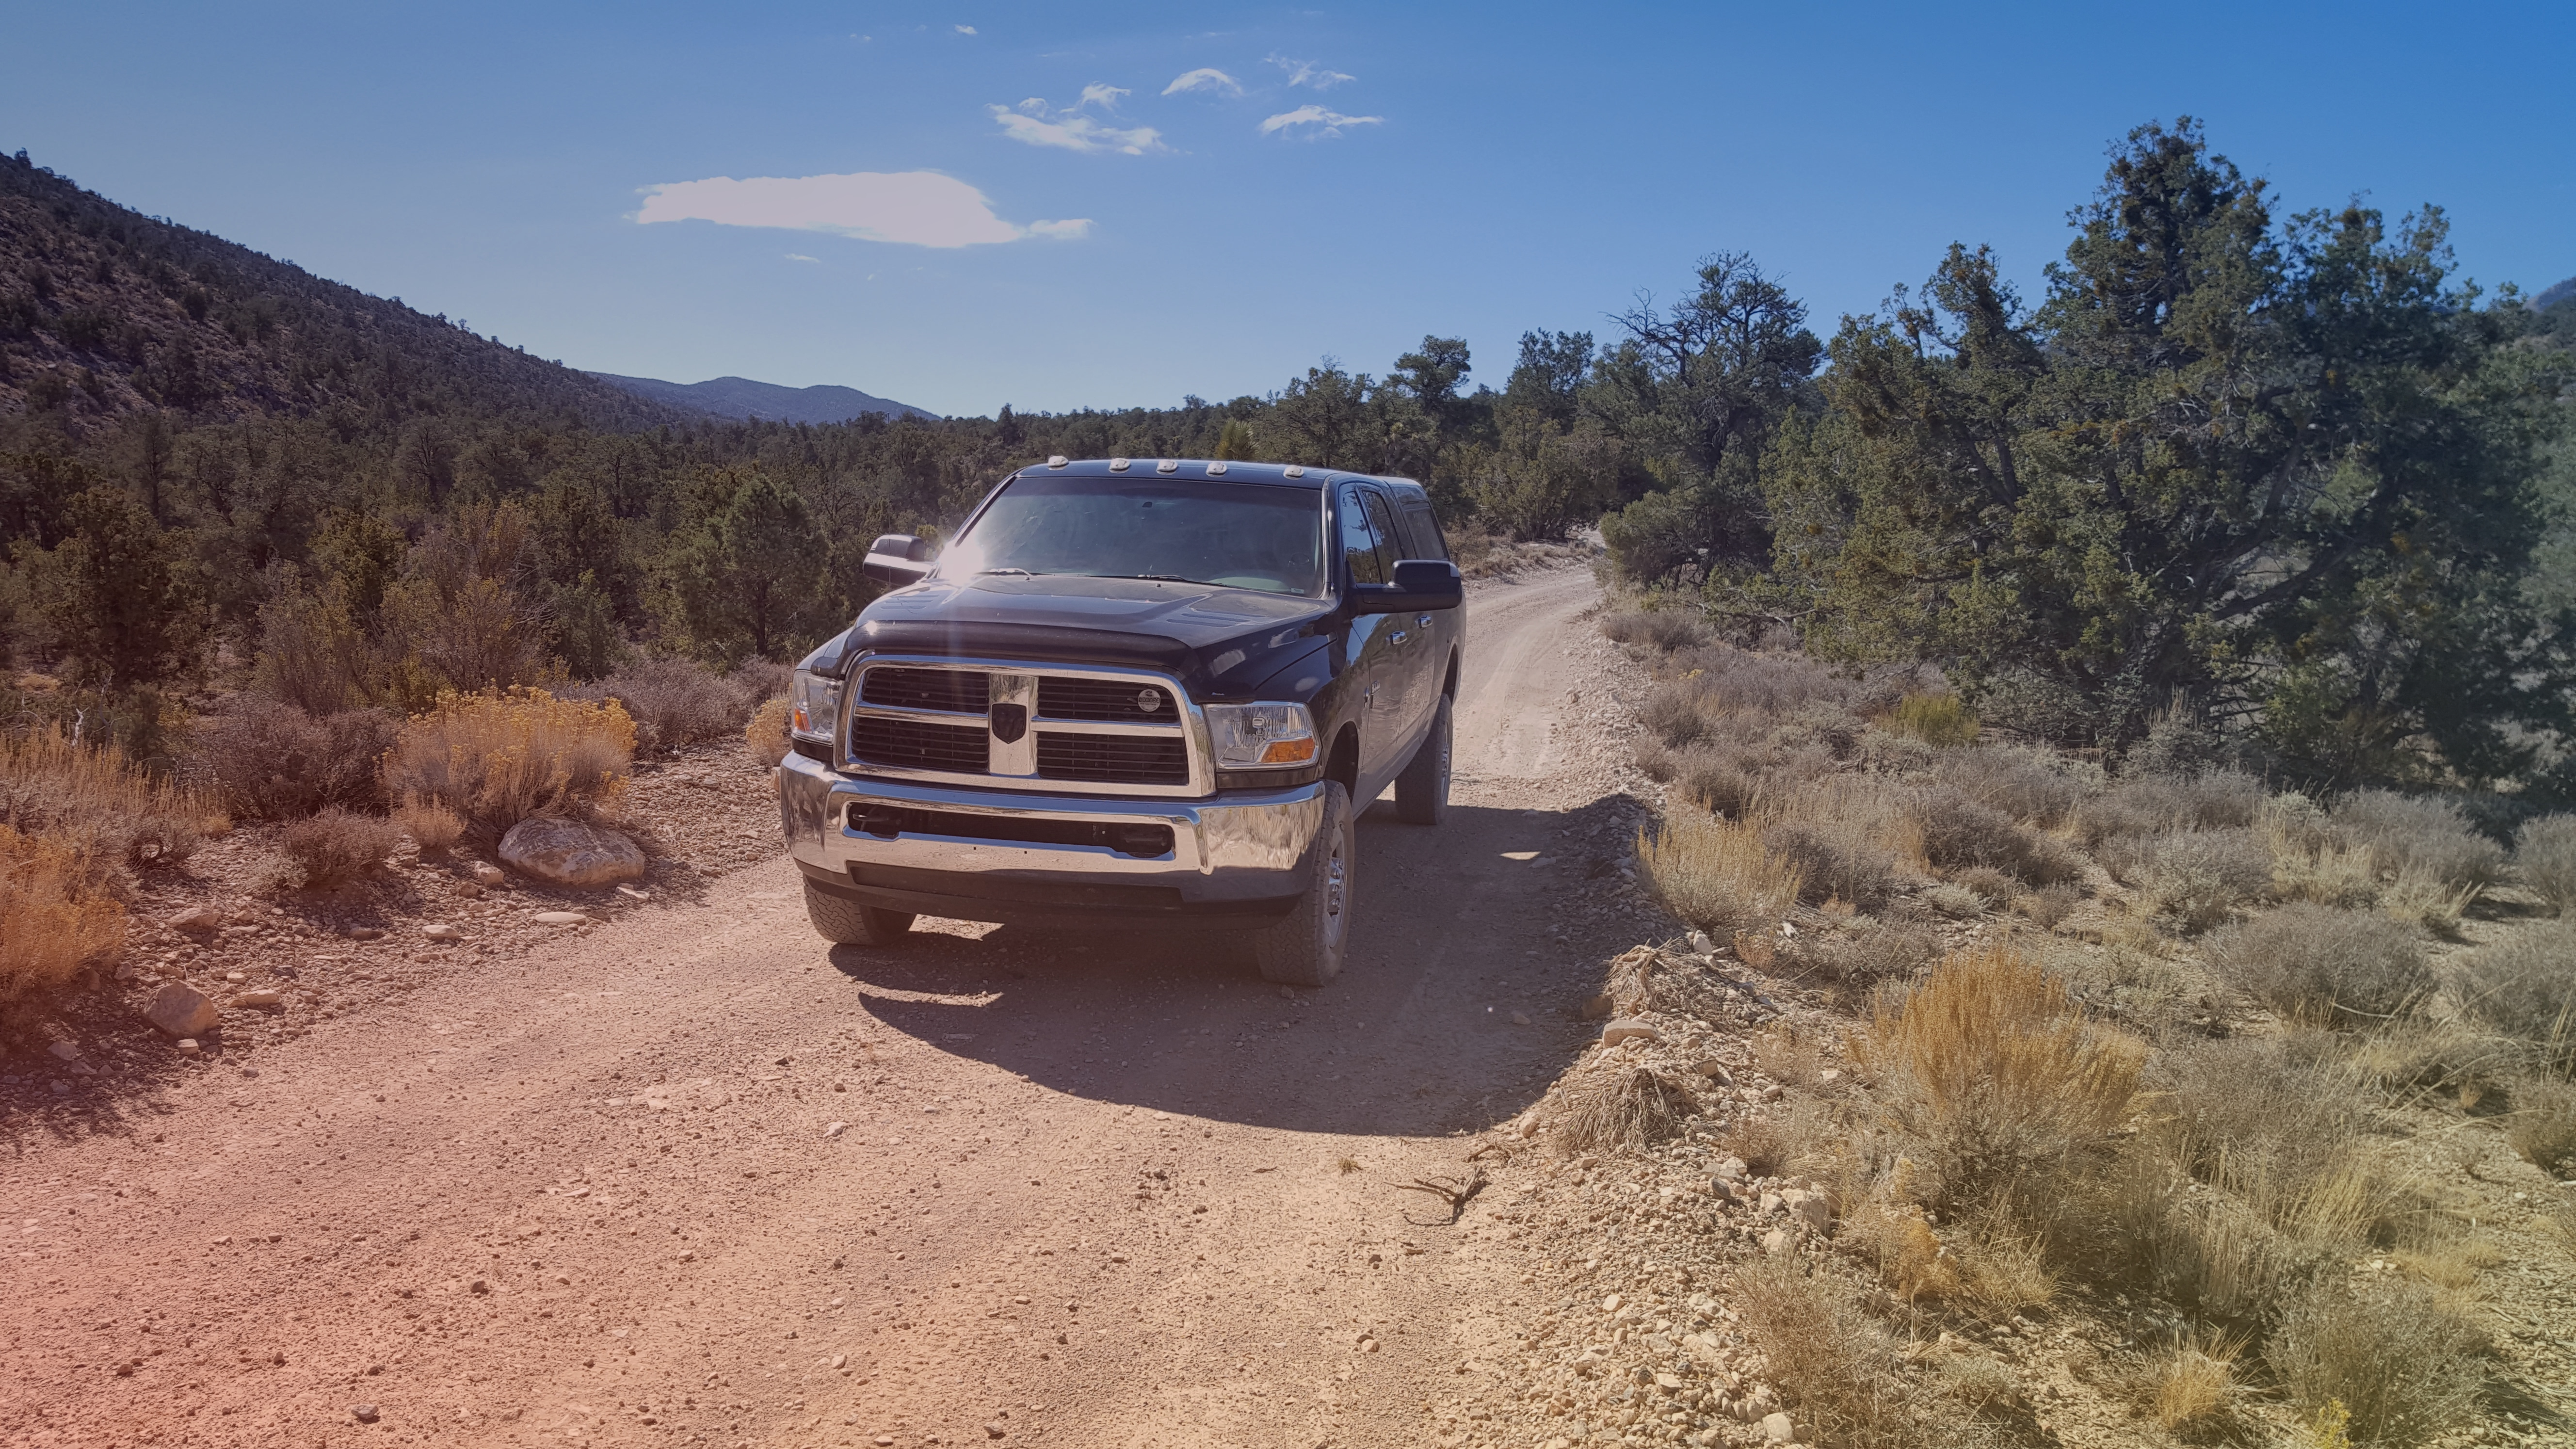 Offroad travels in a 2010 Dodge Ram 2500 with the 6.7L Cummins.  Truck is equiped with AMSOIL lubricants througout.